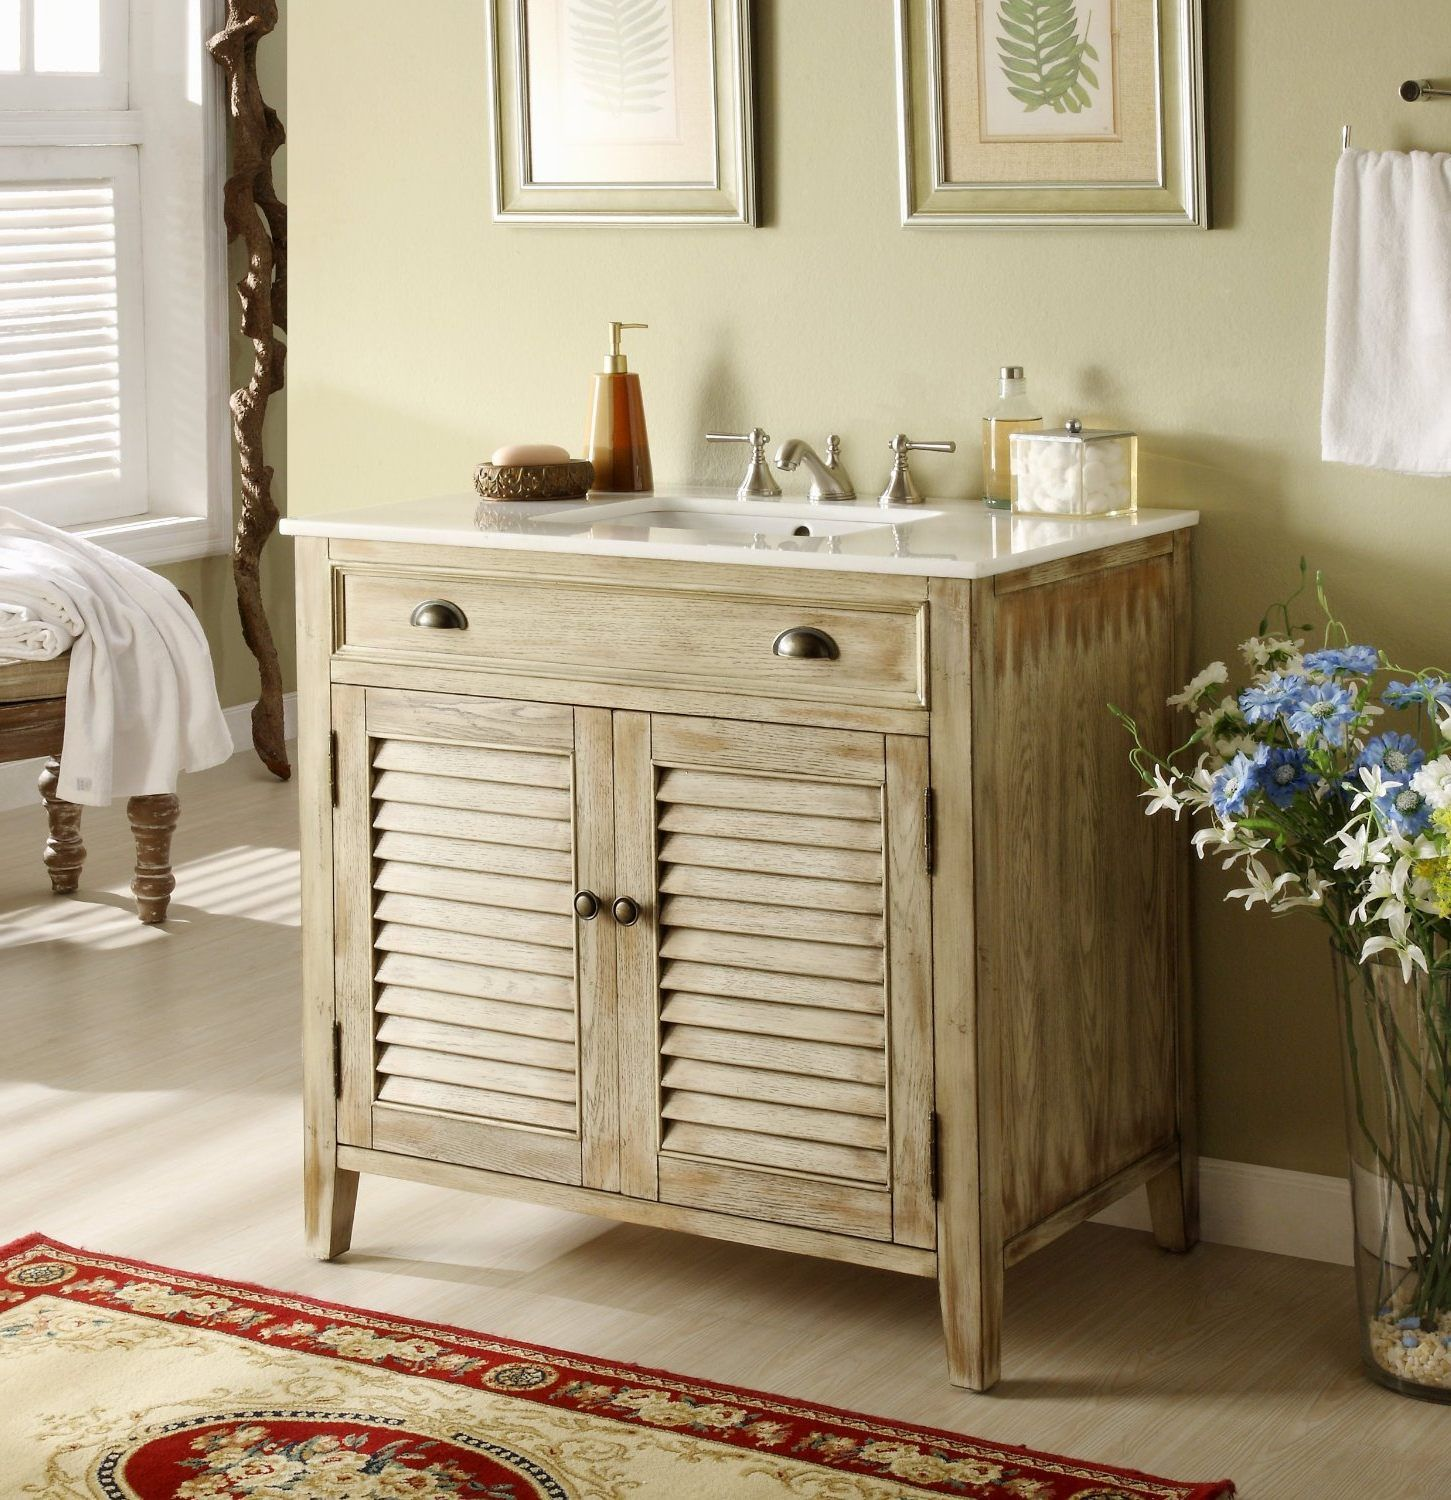 Rustic Bathroom Vanity for Bring A Touch of Texture to Your Bath ...